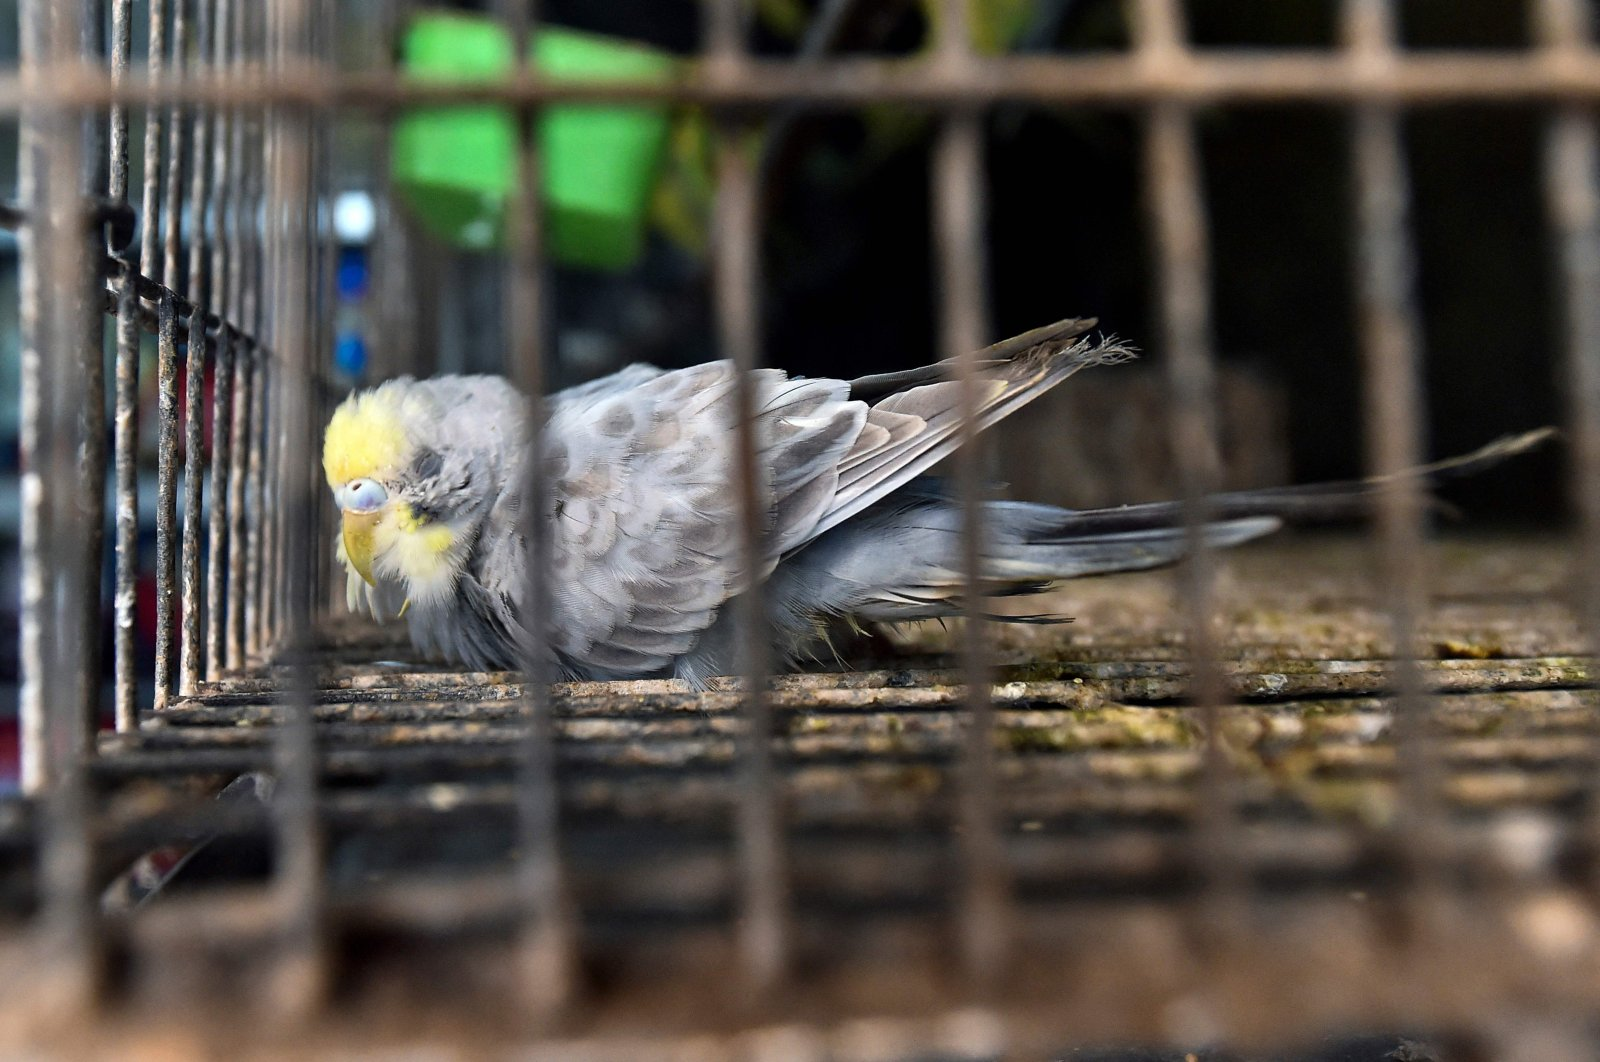 A bird is seen in a cage inside a closed pet shop in Dhaka, Bangladesh, July 14, 2021. (AFP Photo)